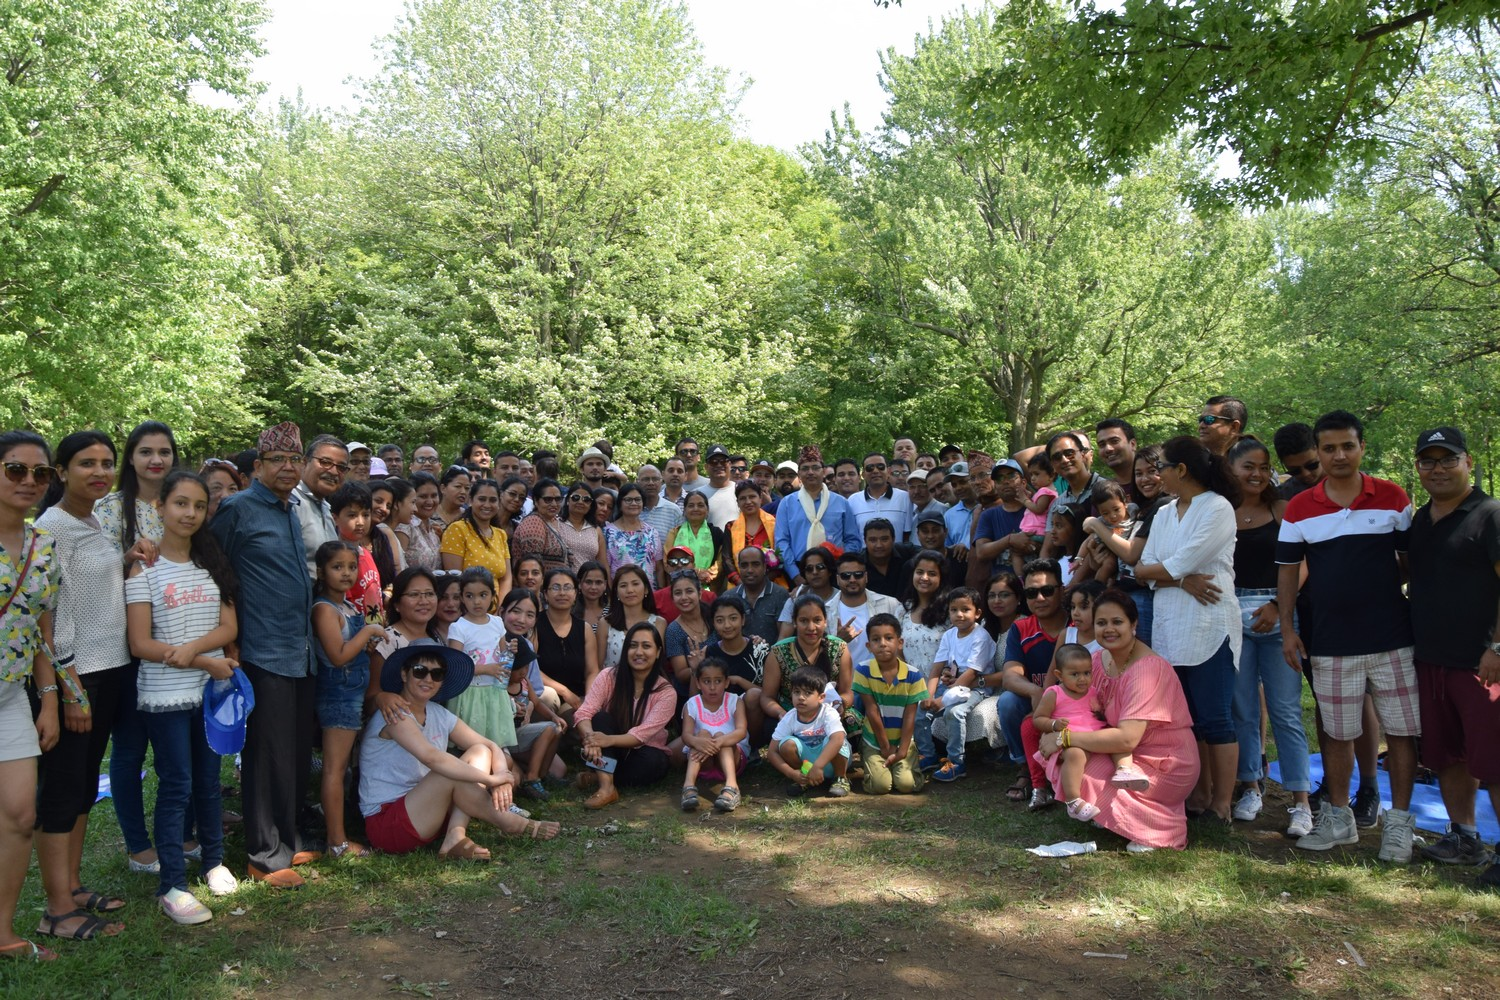 ANQ Annual Picnic - Great Summer Fun